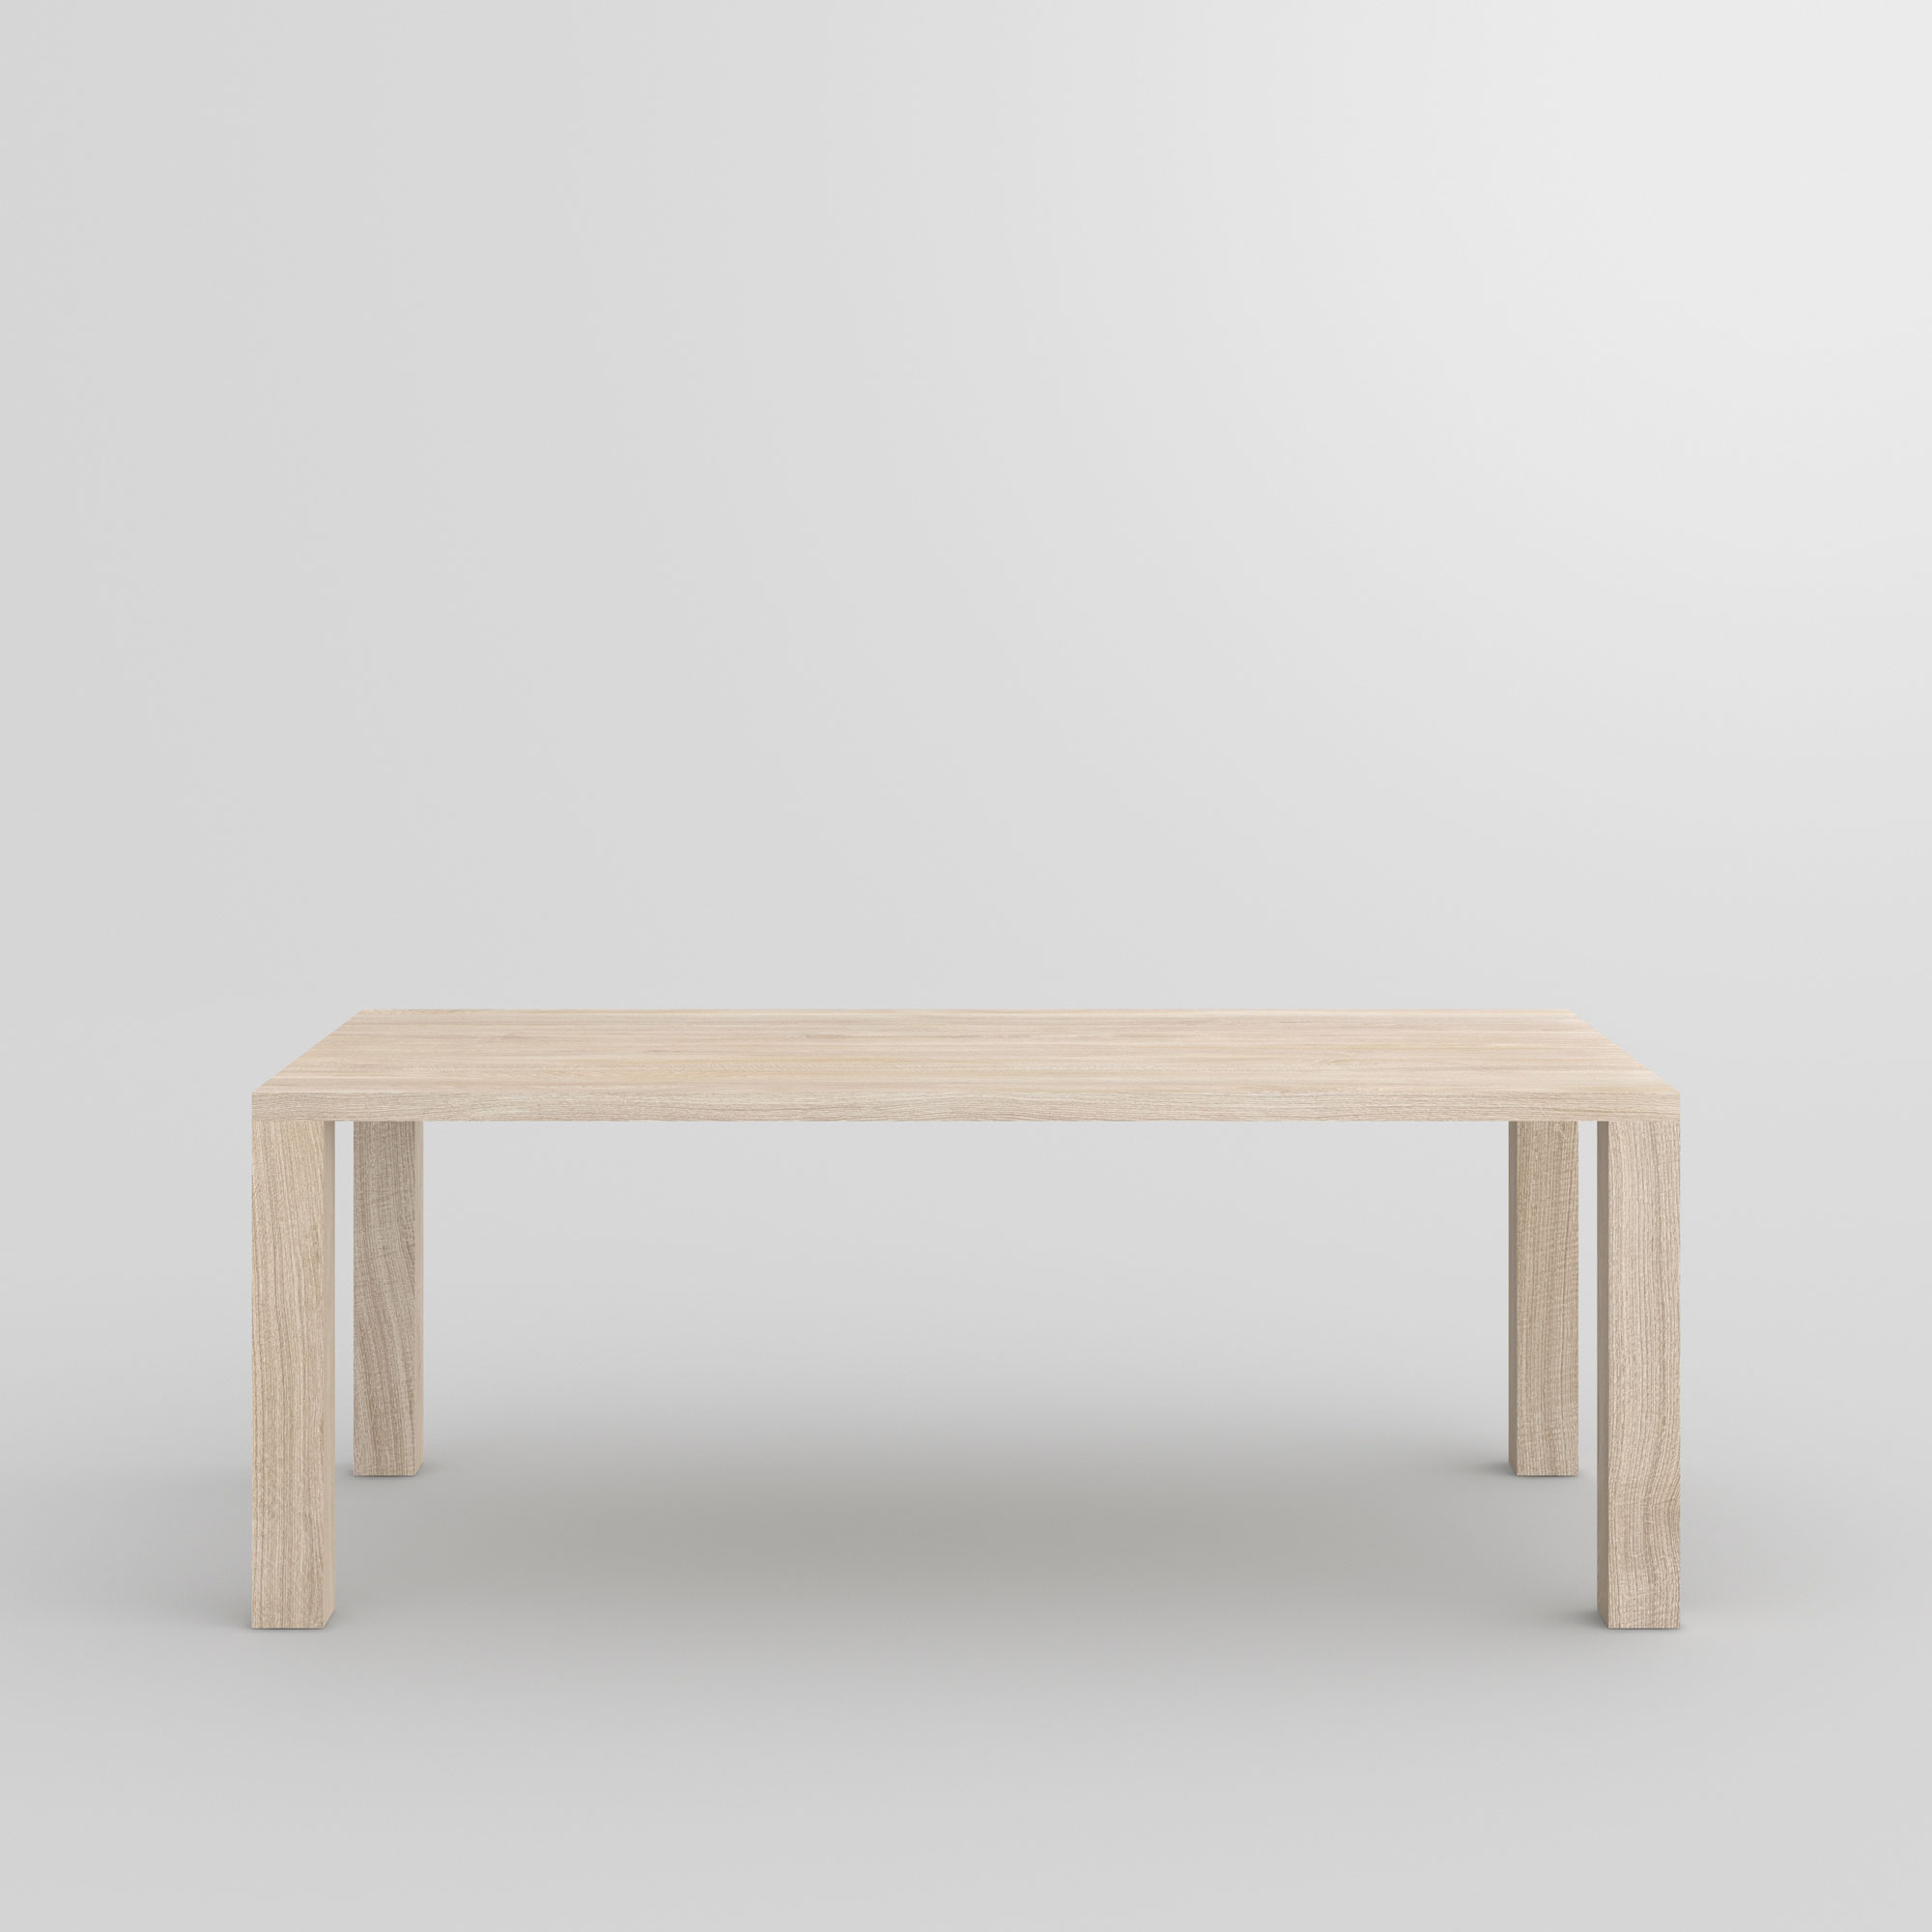 Frameless Solid Wood Table IUSTUS cam2 custom made in solid wood by vitamin design